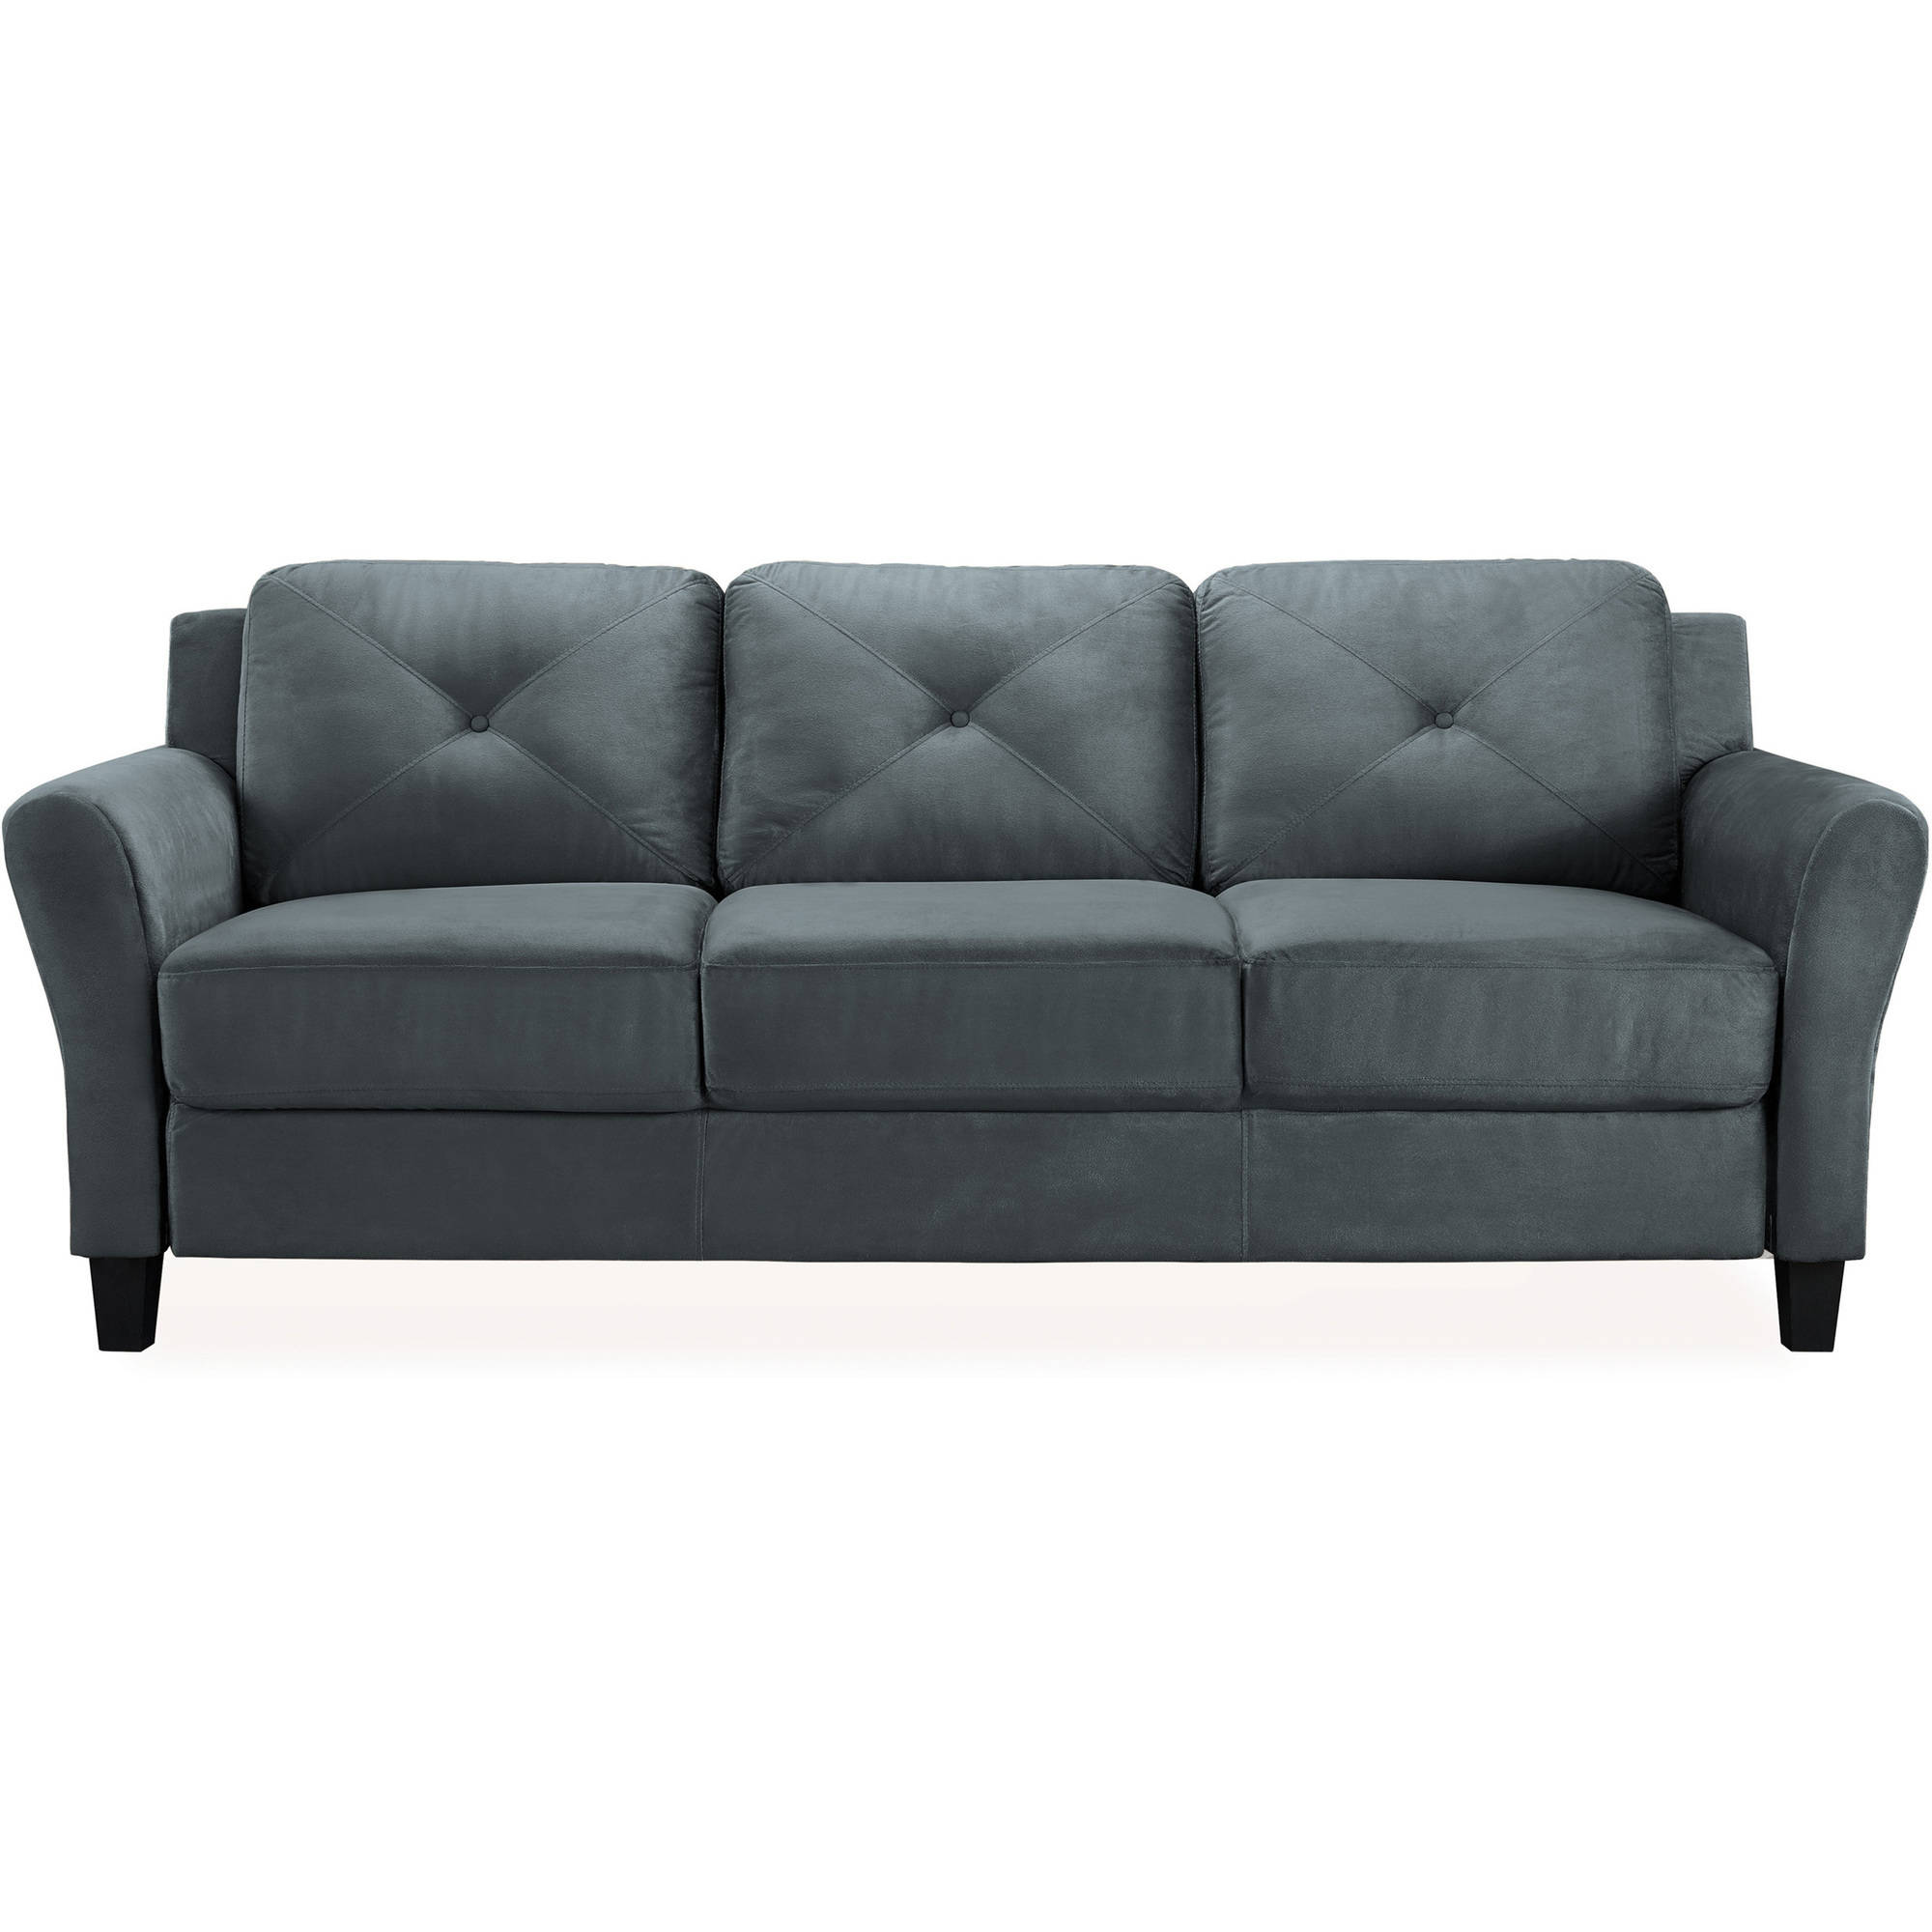 Settee No Arms Lifestyle Solutions Taryn 78 75